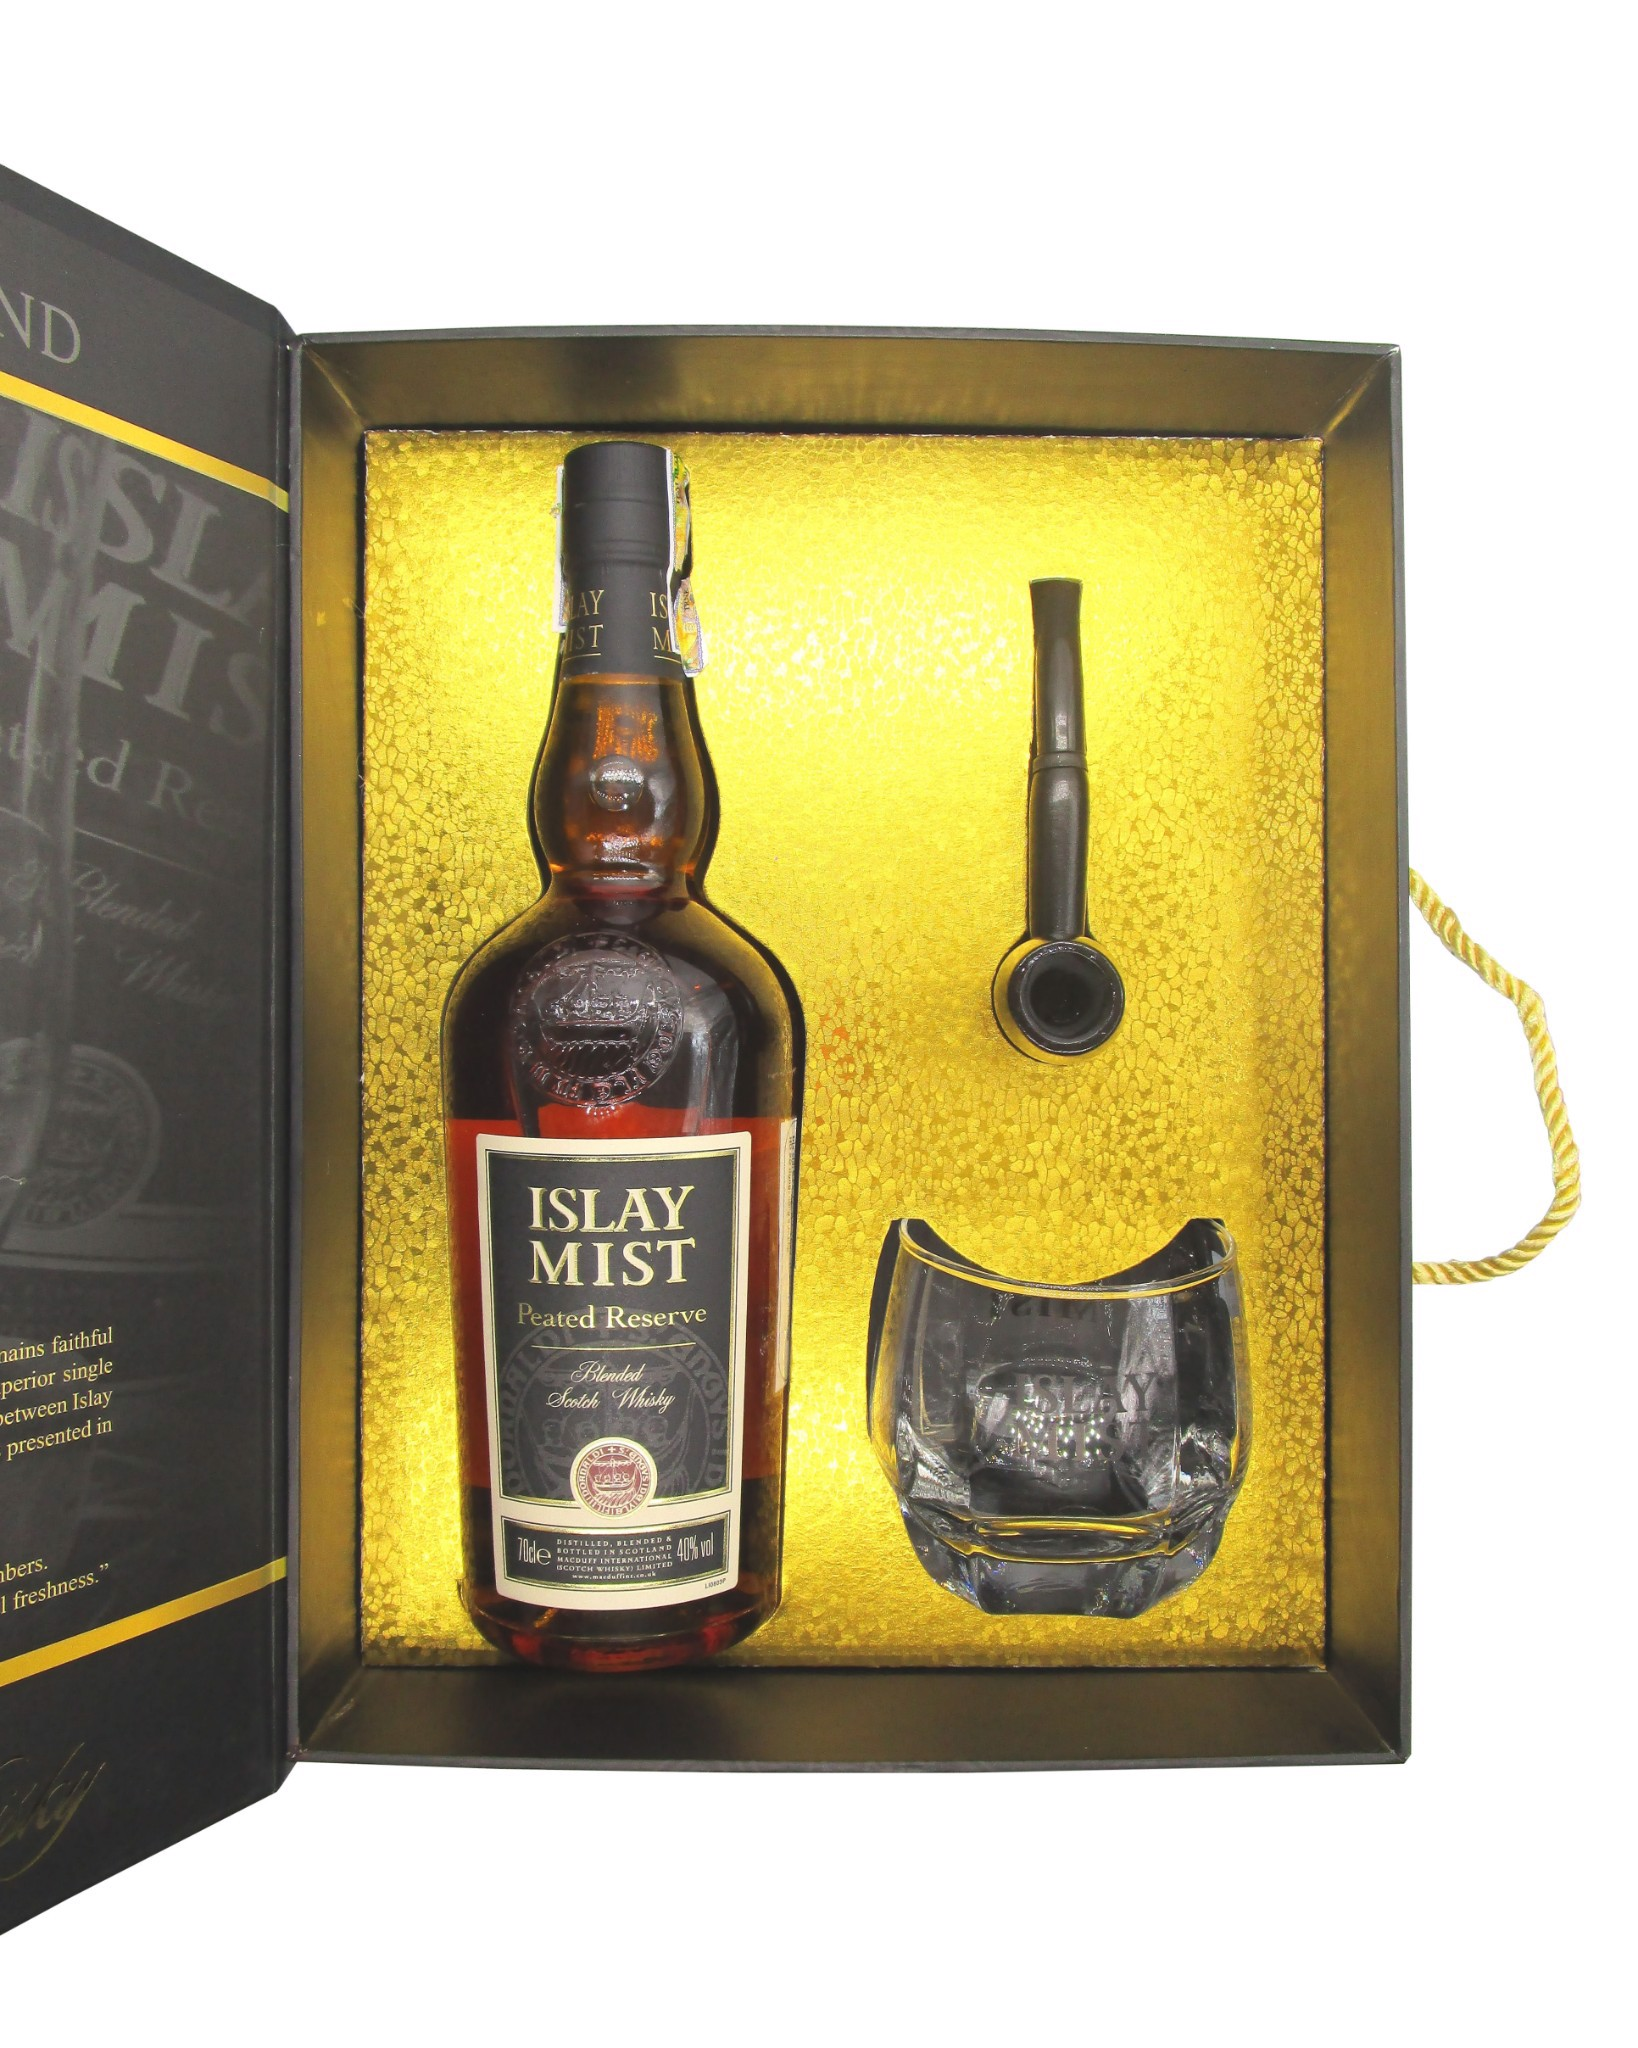 Islay Mist Peated Reserve Scotch Whisky 700ml 40%